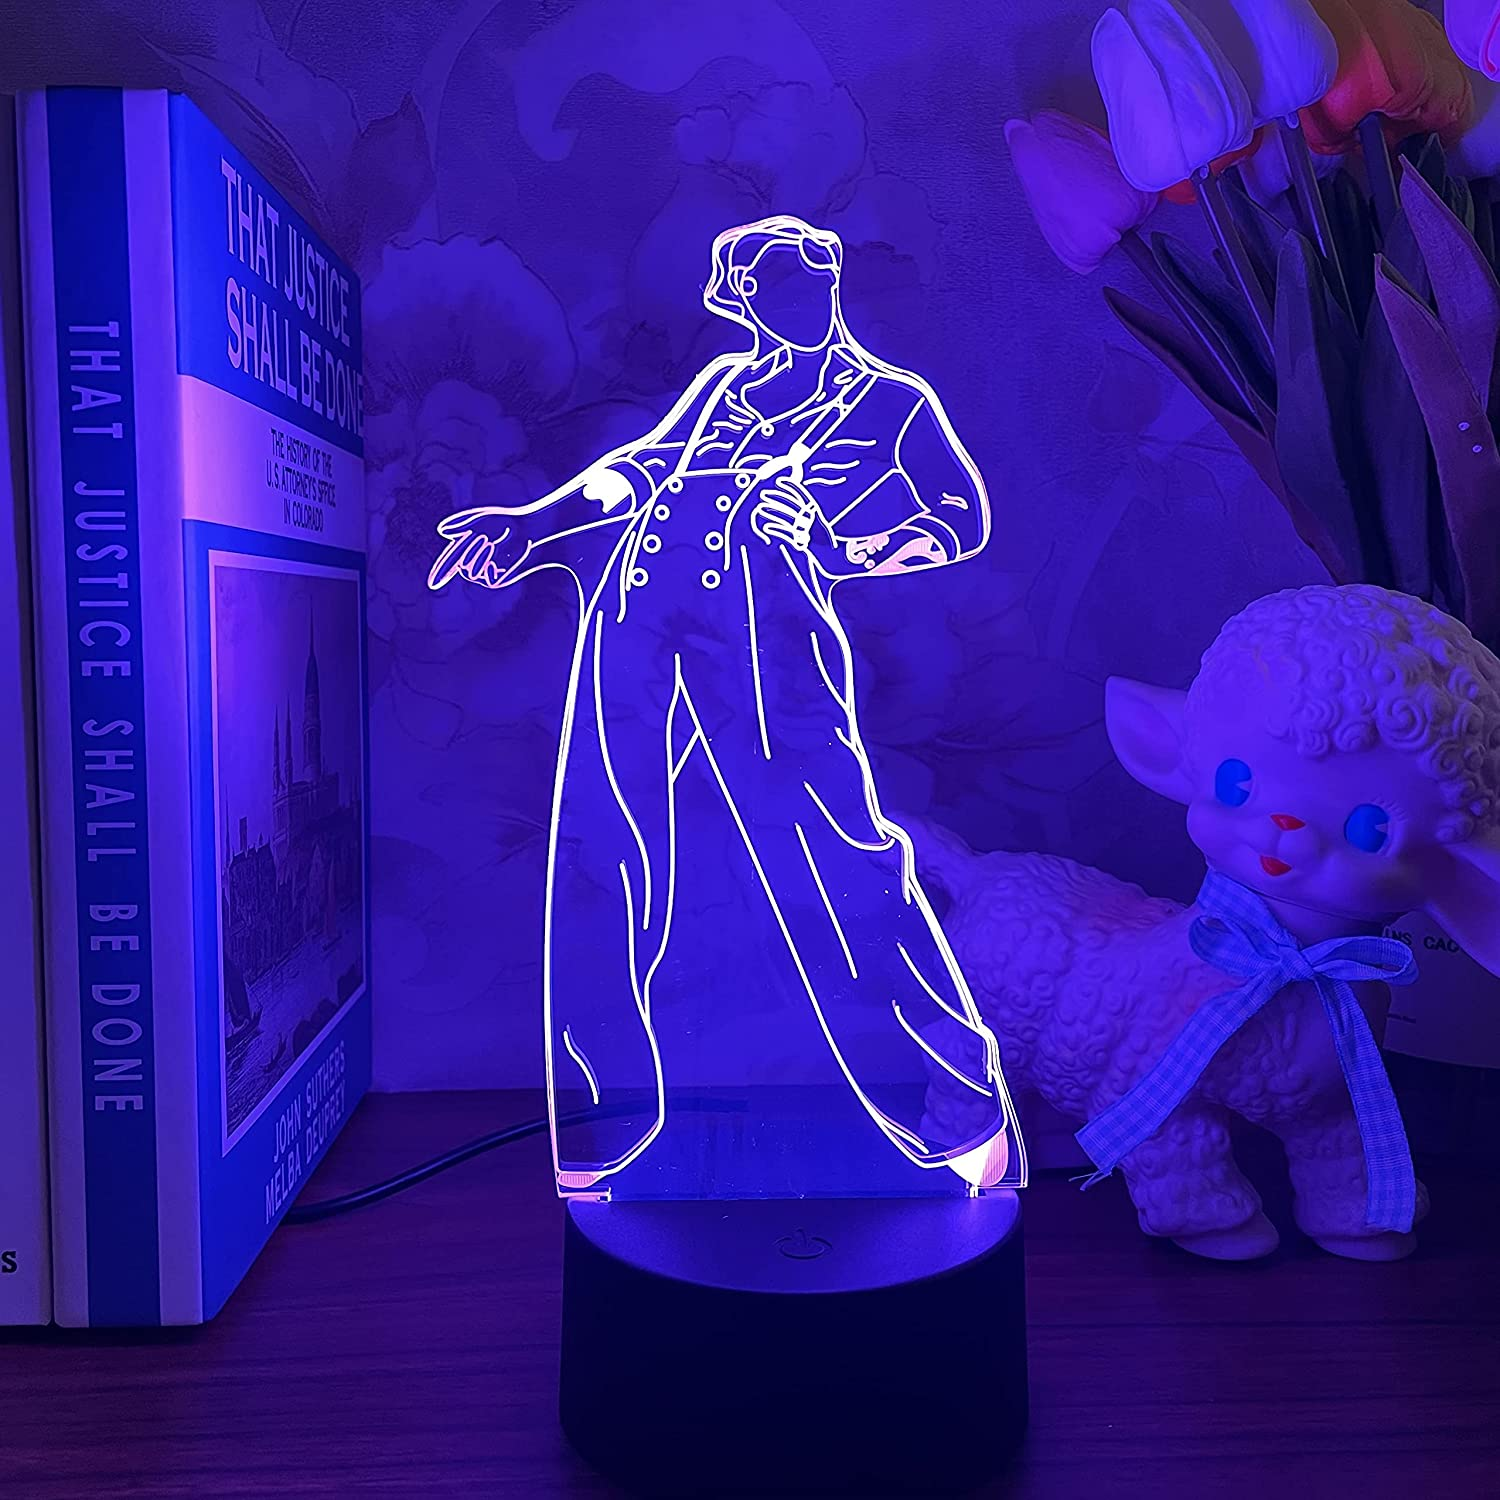 KATA Harry Edward Styles 3D Singer Idol Night Light Harry Styles lamp Gift for Fans Bedroom Decor Light Led Sensor Color Changing Work Desk Lamp Harry & Styles-Remote Contro